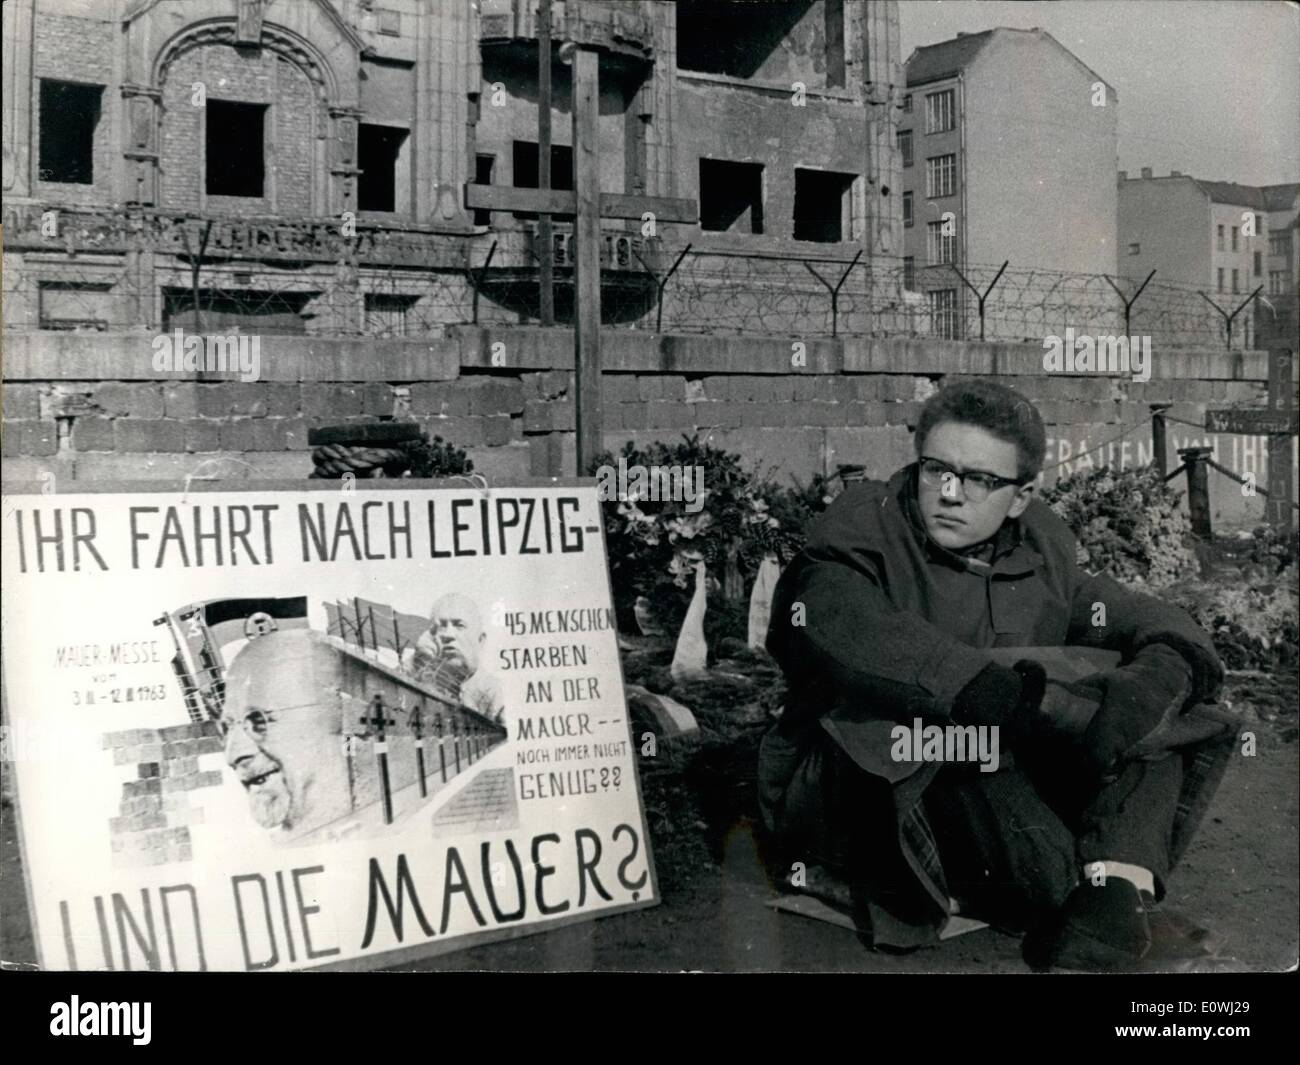 Mar. 03, 1963 - A 19 years old Westberliner wants to consider the West-German and other western business men. He protested against the businessmen which are driving to Leipzig to the East zone exhibition, never theless the wall. He will sit for three days on the memorial for the shooting Eastberliner Peter Fechter. ~~~~ his place he was a placard with the words 50 Your are going to the Leipzig Fair and what about the wall?'' 45 people died at the wall - Not En~~gh. Stock Photo